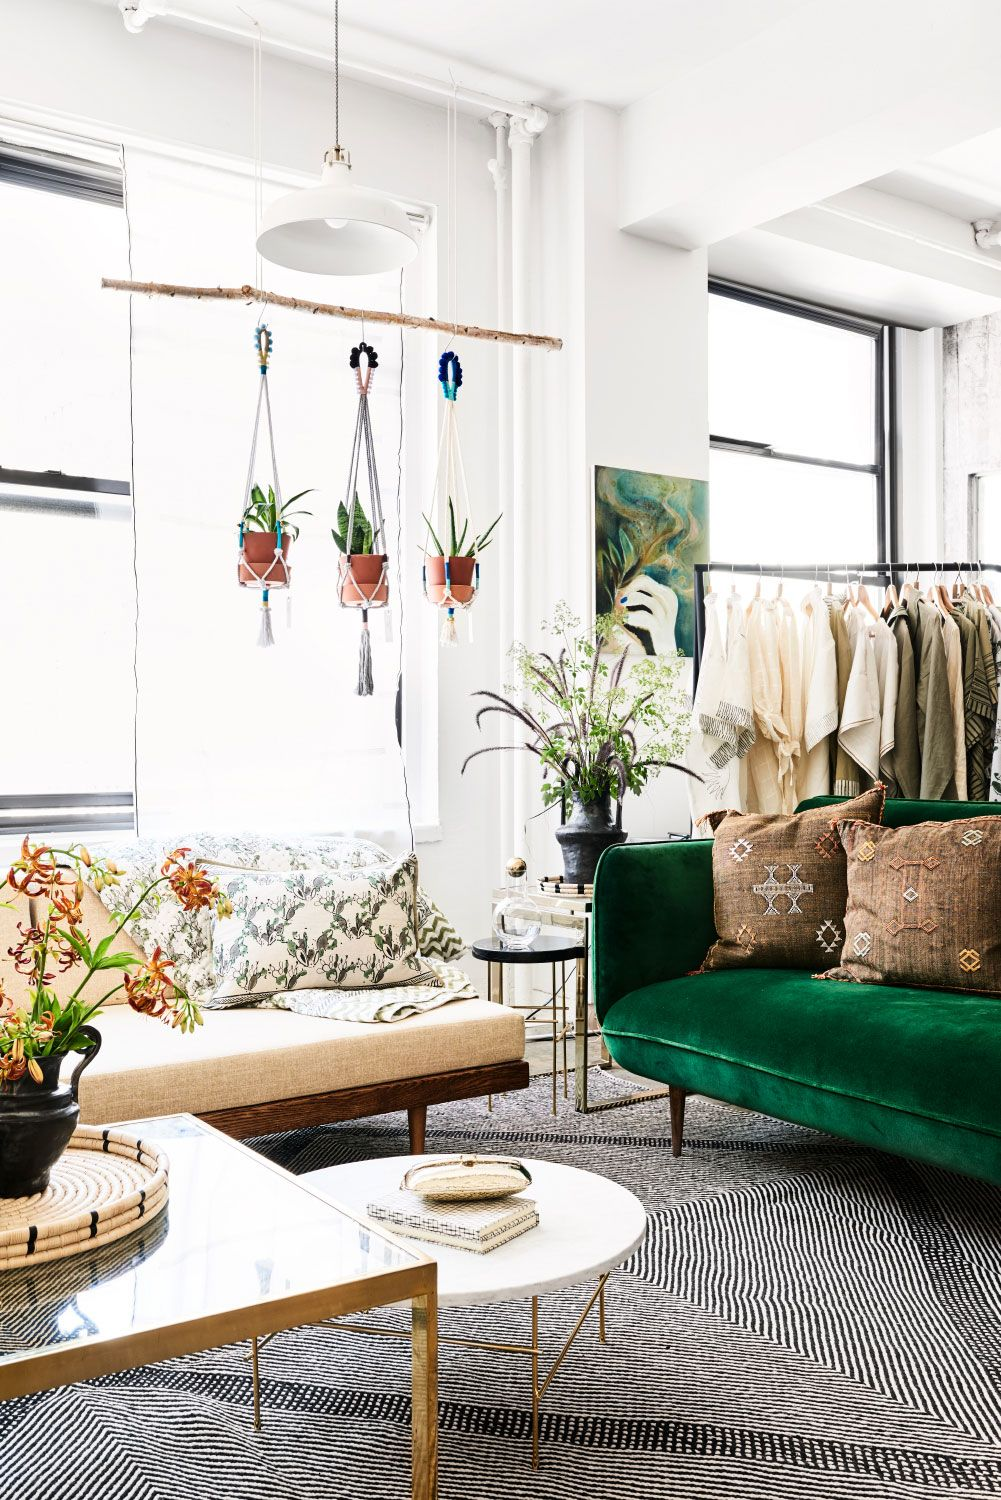 The witness apartment in chelsea is home to hand for 3 days a pop up presentation of twenty art design and lifestyle brands where every item in the